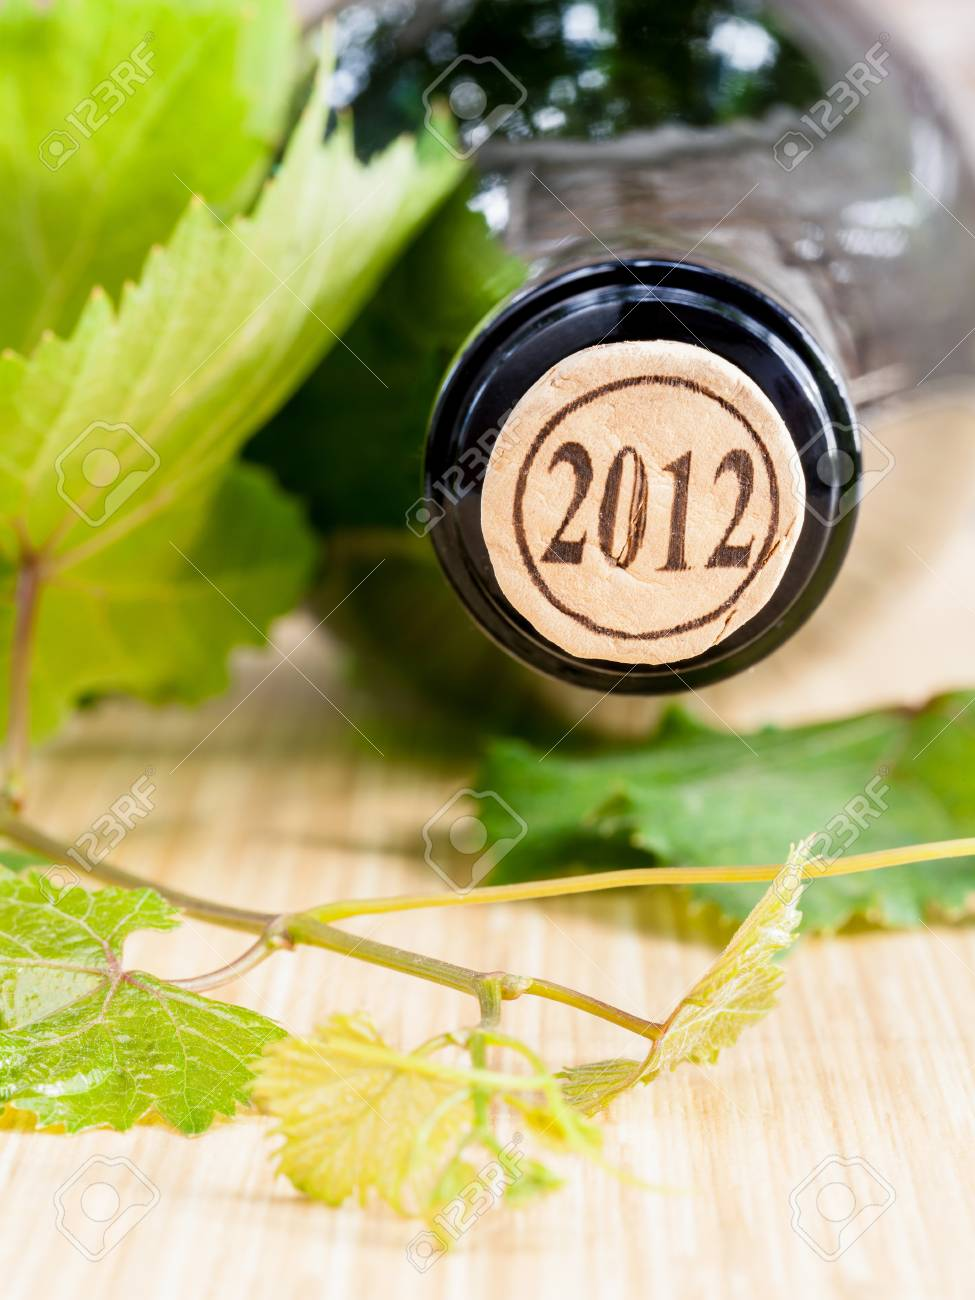 Wine Bottle With Vine And Wine Cork Put On The Board Stock Photo